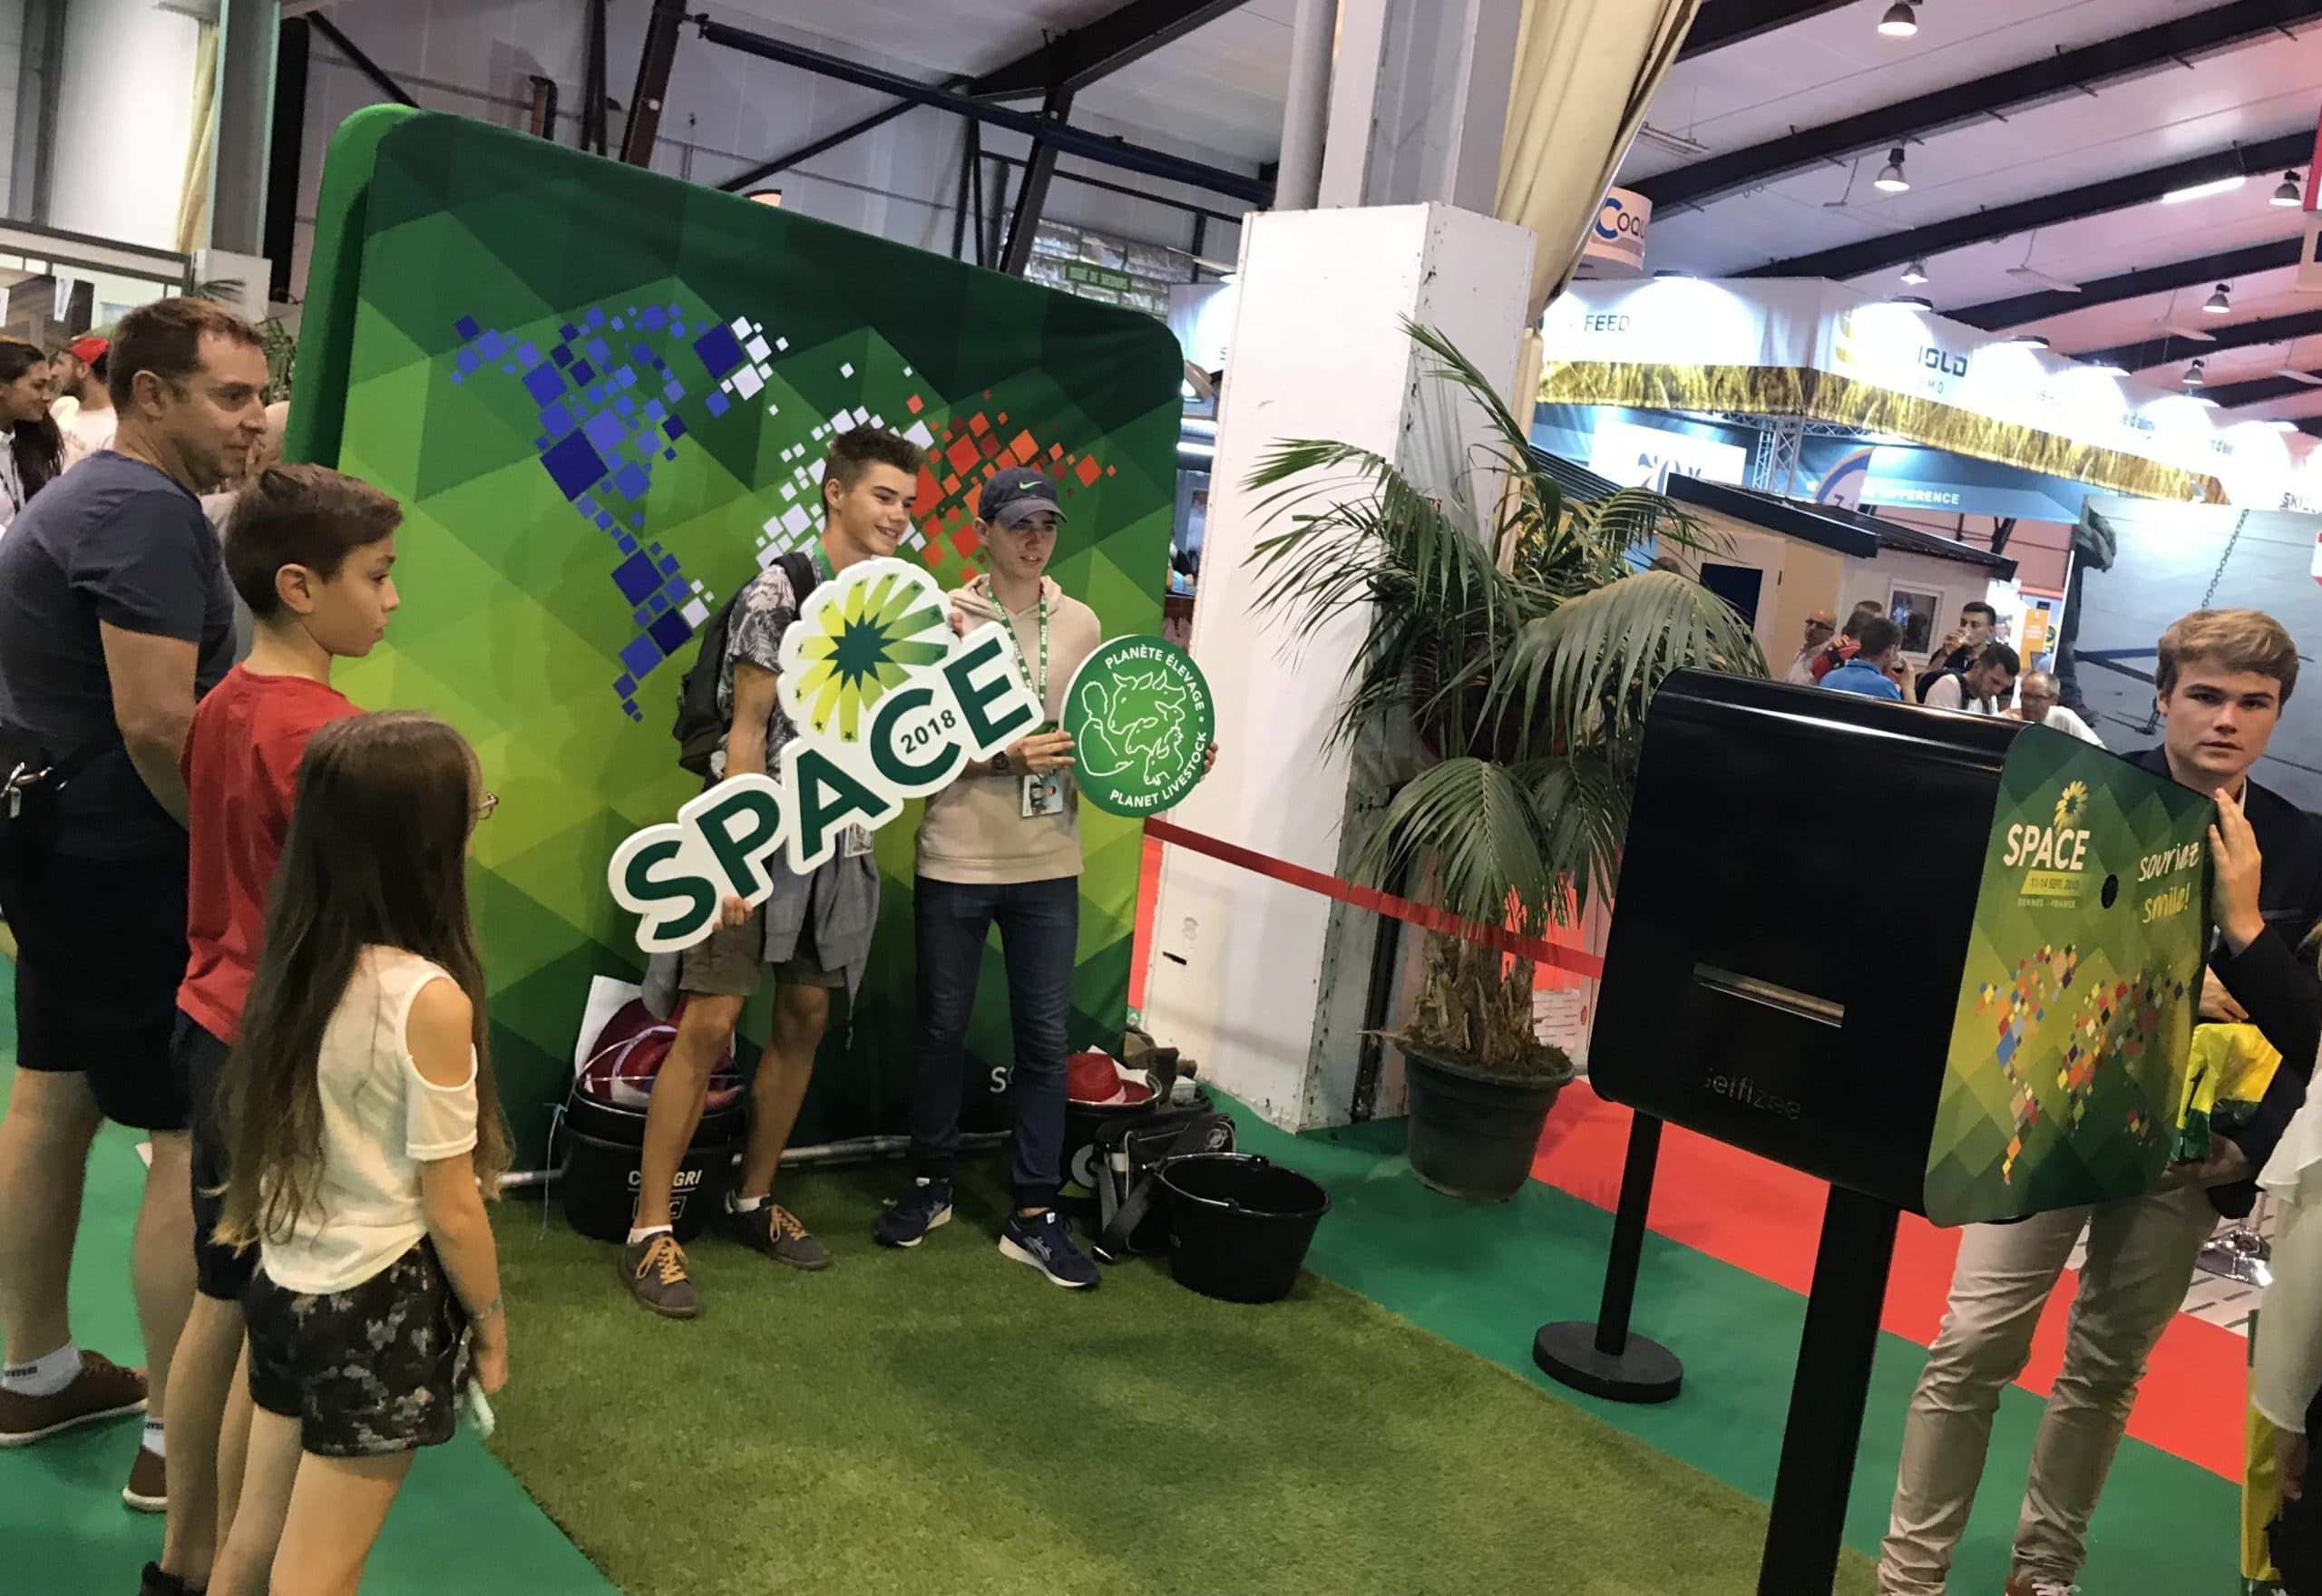 Animation photocall et borne photo personnalisée au salon du SPACE 2018 à Rennes